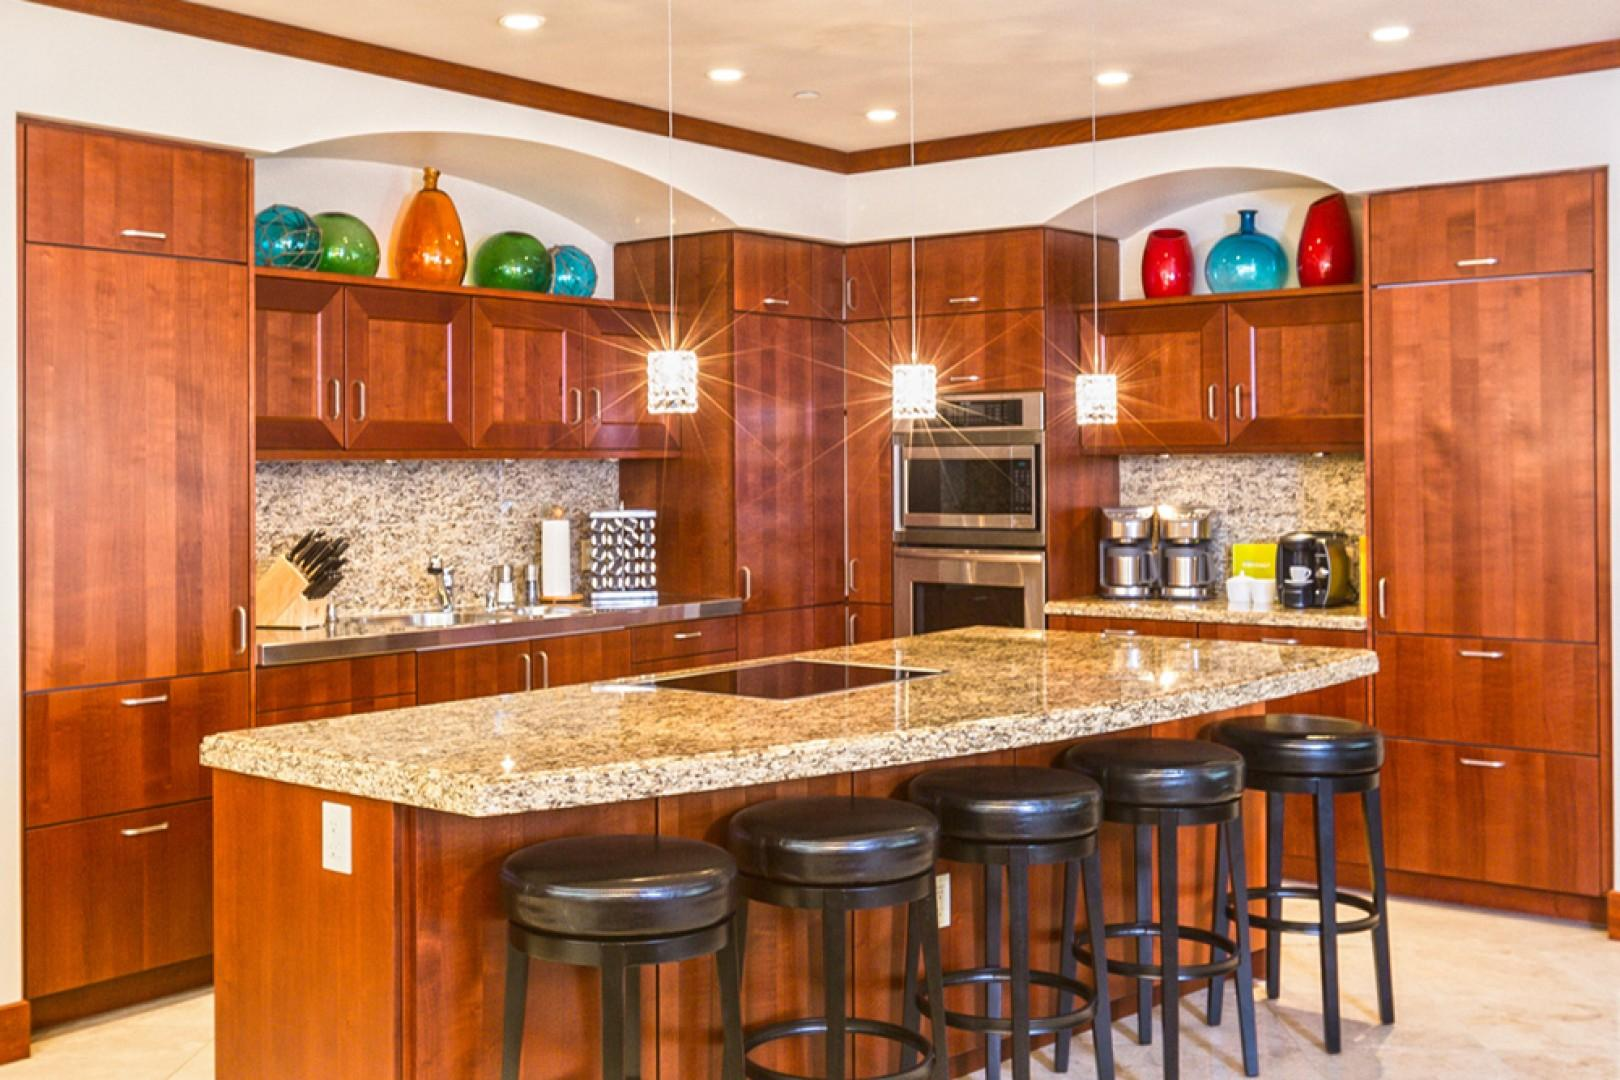 L509 Sandcastles Suite Spacious Gourmet Kitchen with Five Bar Stools and an Indoor Dining Table Seating Eight Guests, Also an Espresso Maker and Two Thermal Coffee-Makers, Abundant Cooking Supplies